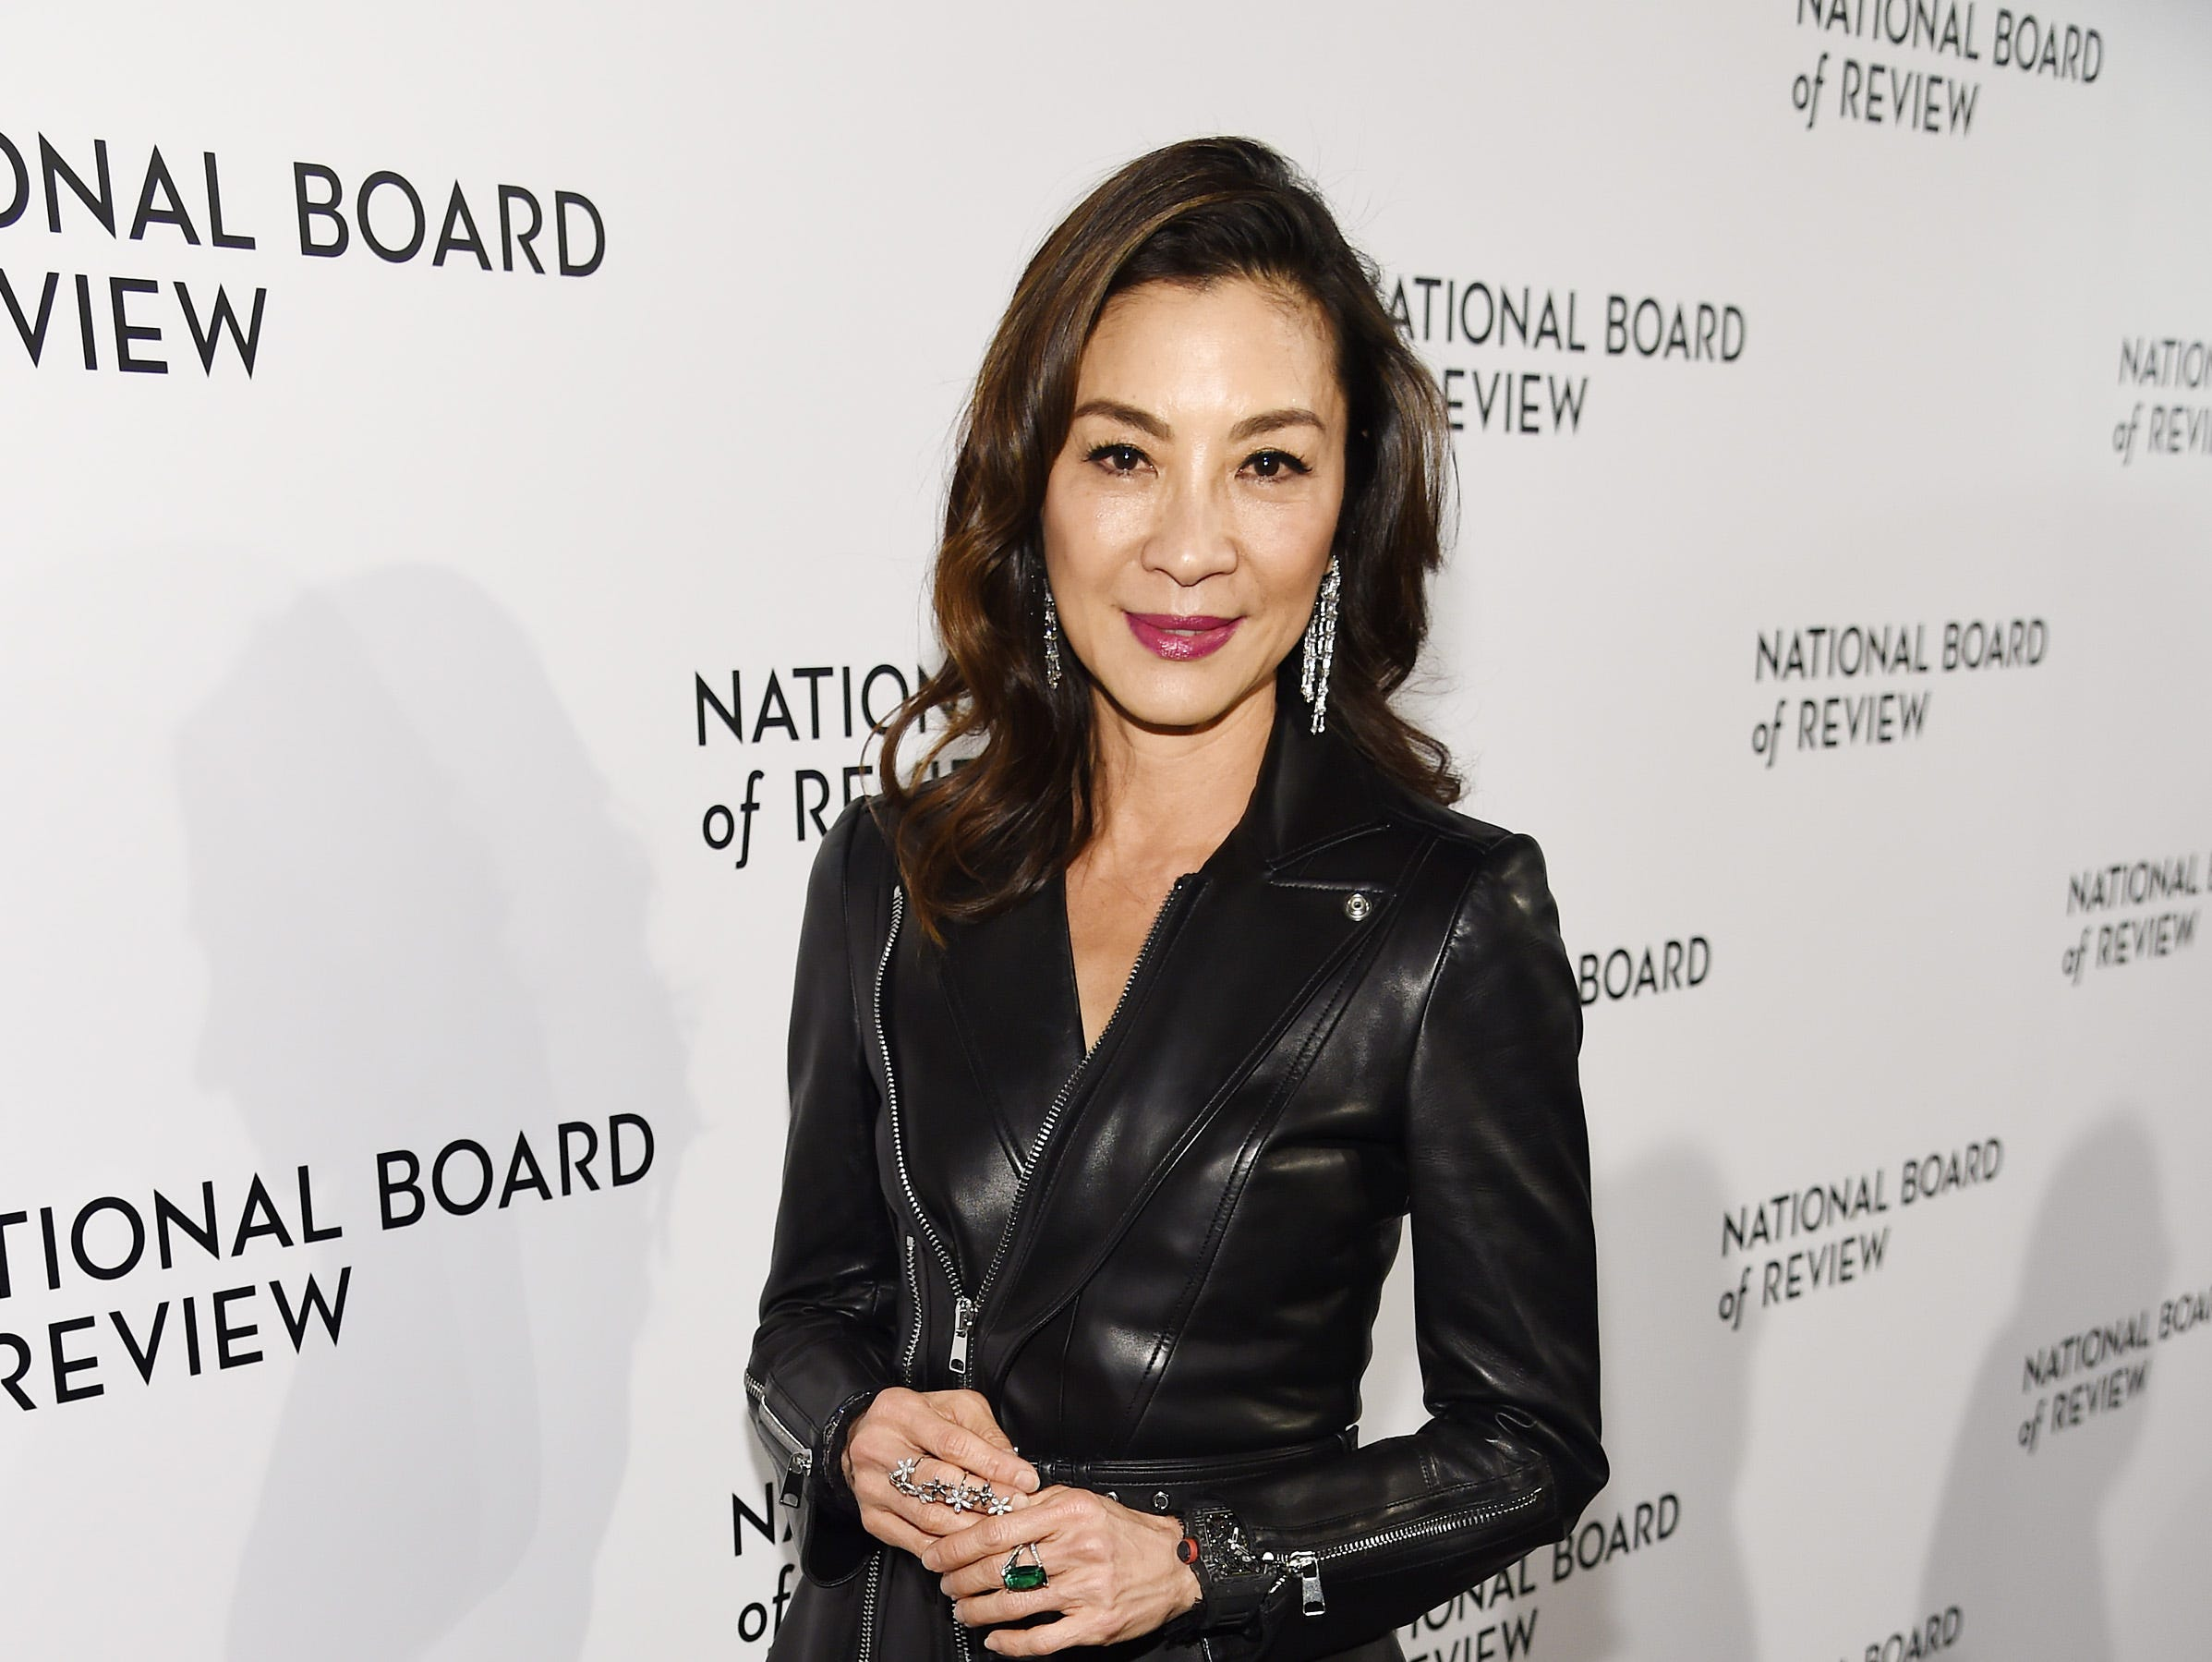 NEW YORK, NY - JANUARY 08:  Michelle Yeoh attends The National Board of Review Annual Awards Gala at Cipriani 42nd Street on January 8, 2019 in New York City.  (Photo by Dimitrios Kambouris/Getty Images for National Board of Review) ORG XMIT: 775259363 ORIG FILE ID: 1079454302